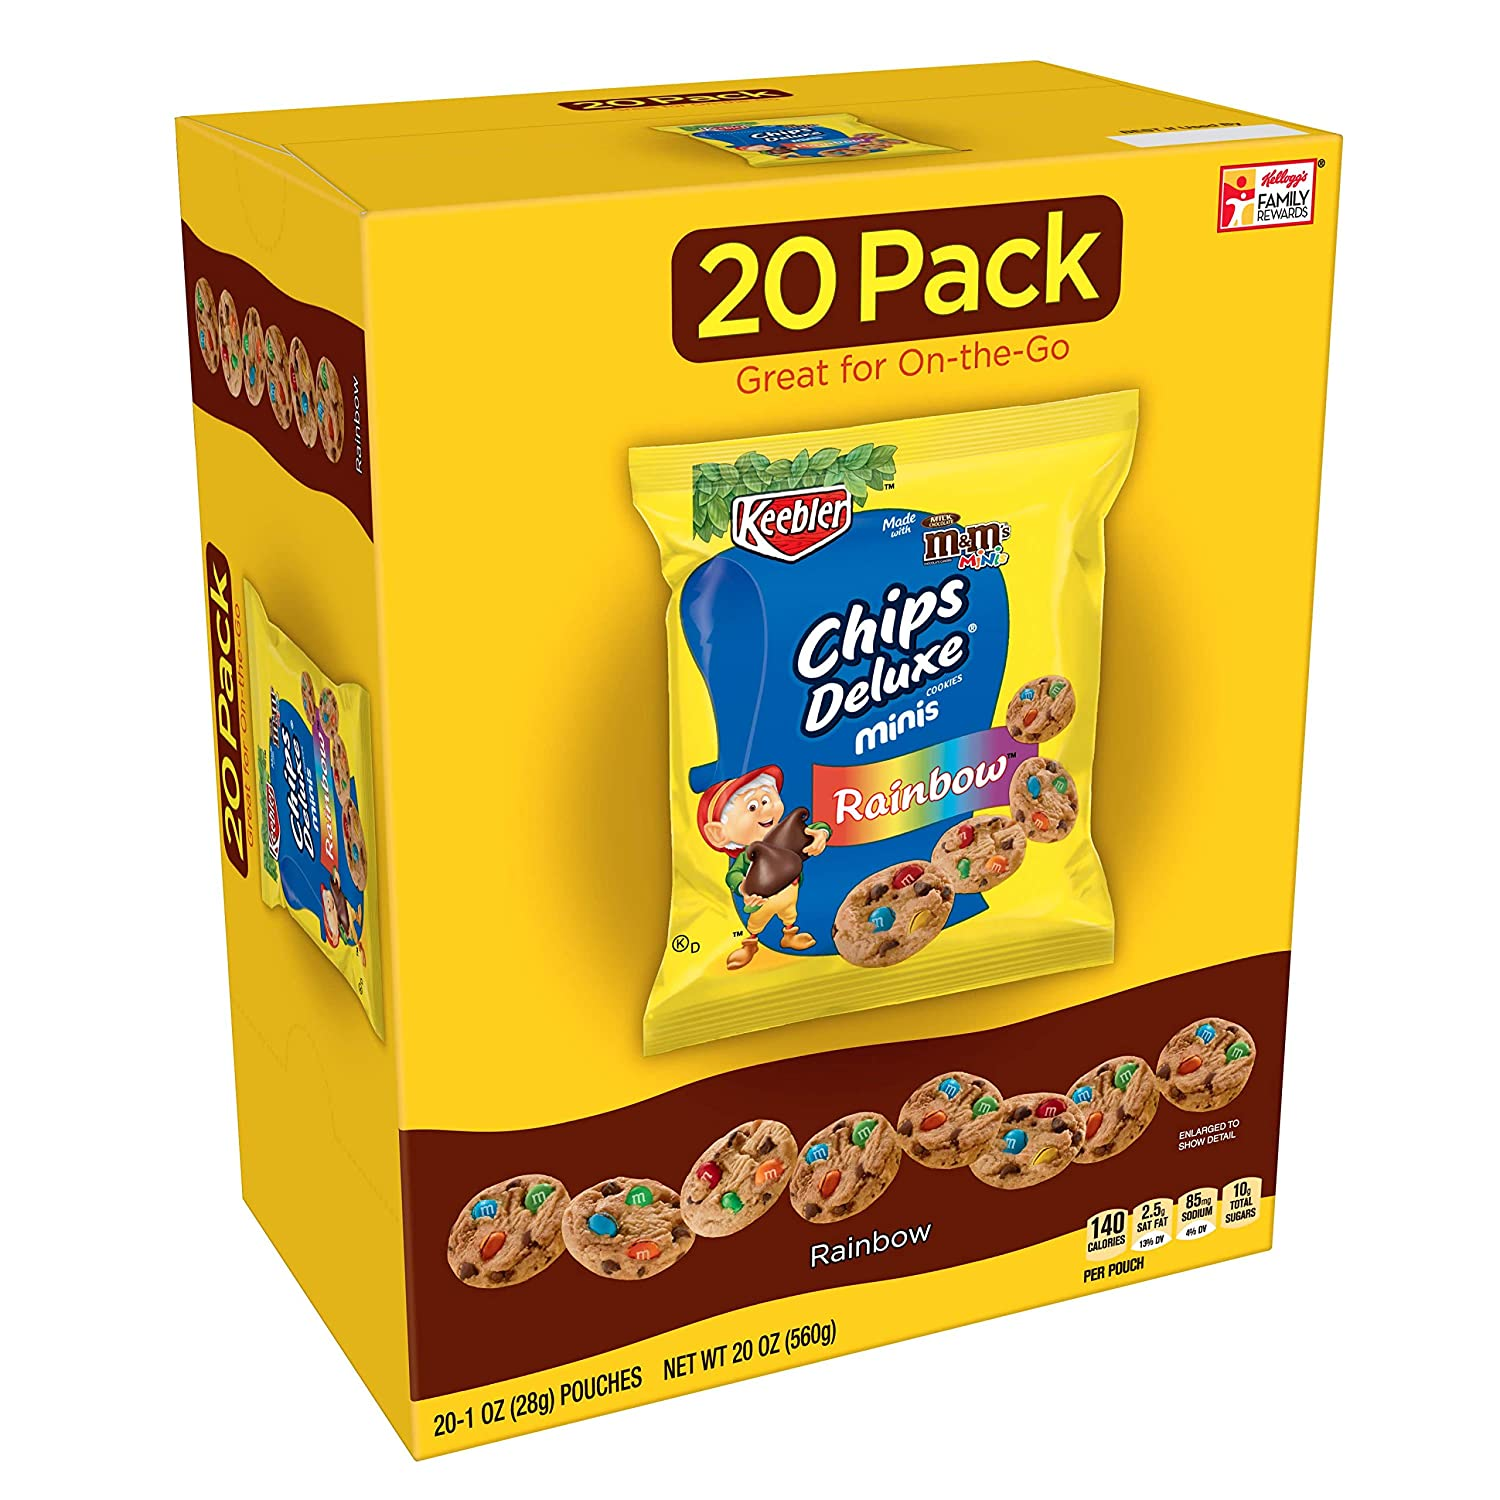 B00OYR6EUU Keebler Chips Deluxe, Mini Cookies, Rainbow, with M&M's Mini Chocolate Candies, (20 Count of 1 Oz Pouches) 20 Oz 8168-MLJClL